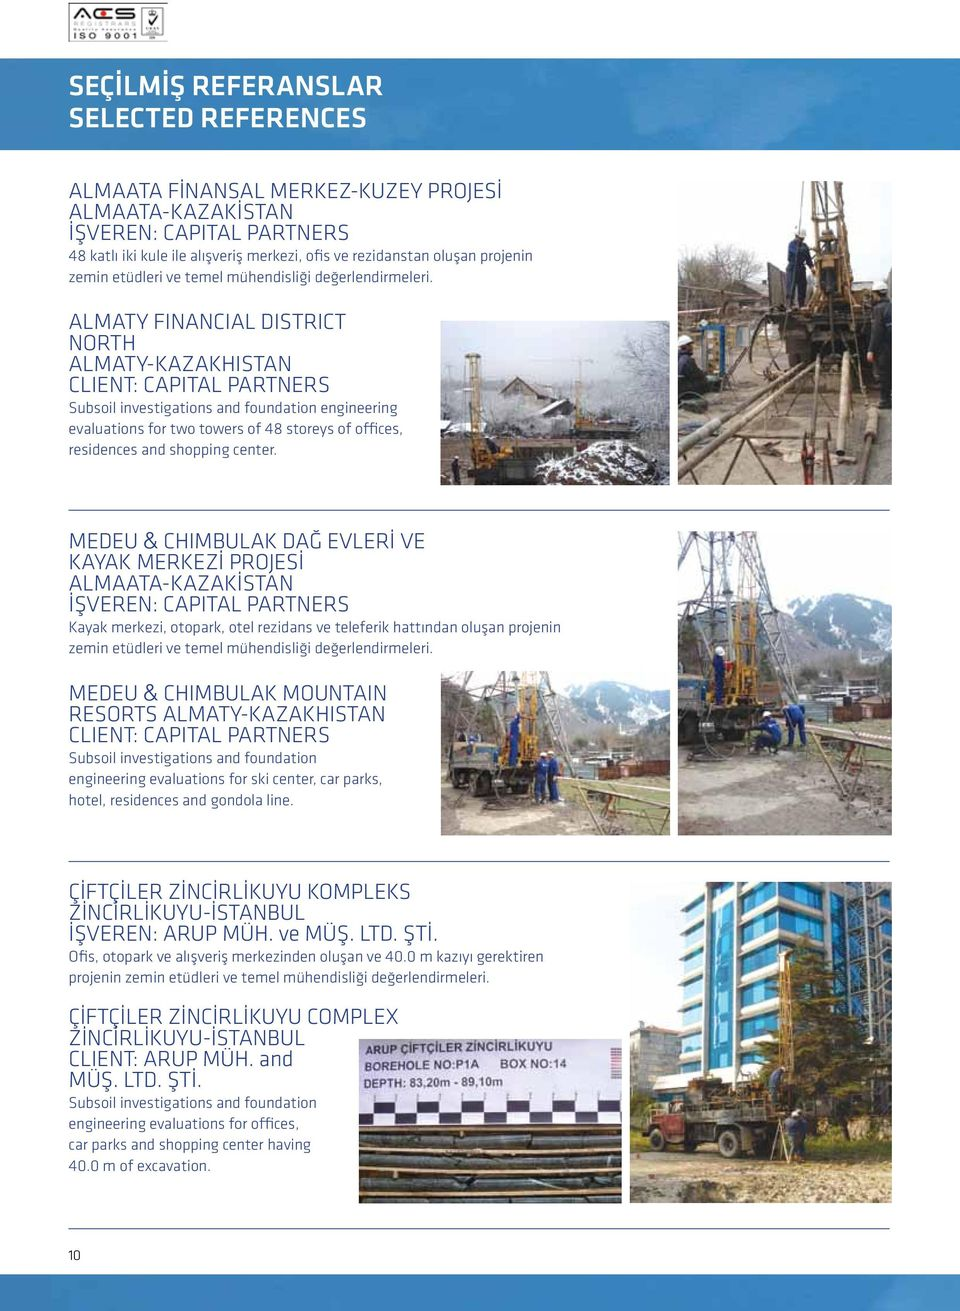 ALMATY FINANCIAL DISTRICT NORTH ALMATY-KAZAKHISTAN CLIENT: CAPITAL PARTNERS Subsoil investigations and foundation engineering evaluations for two towers of 48 storeys of offices, residences and